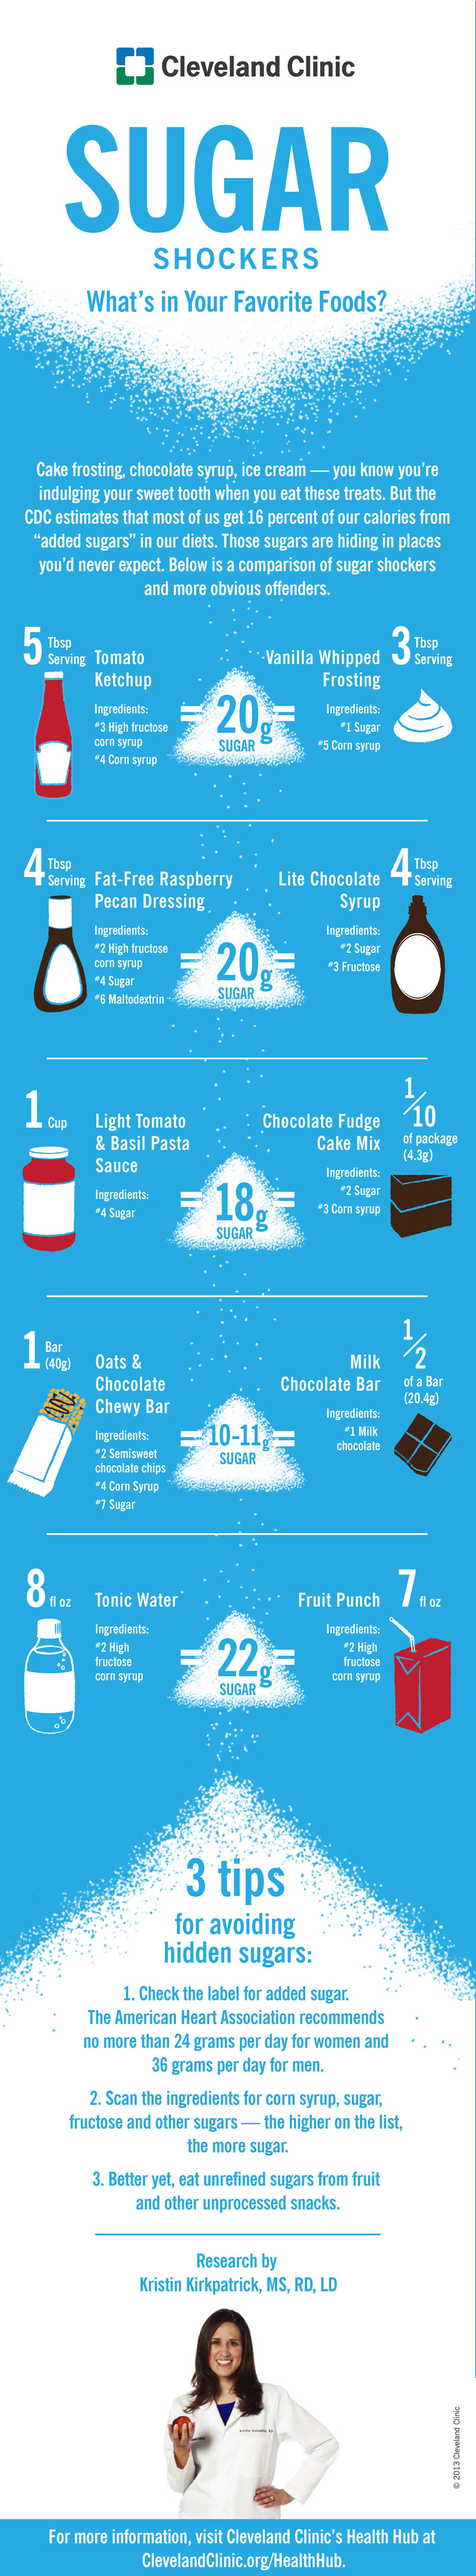 hidden-sugars-infographic